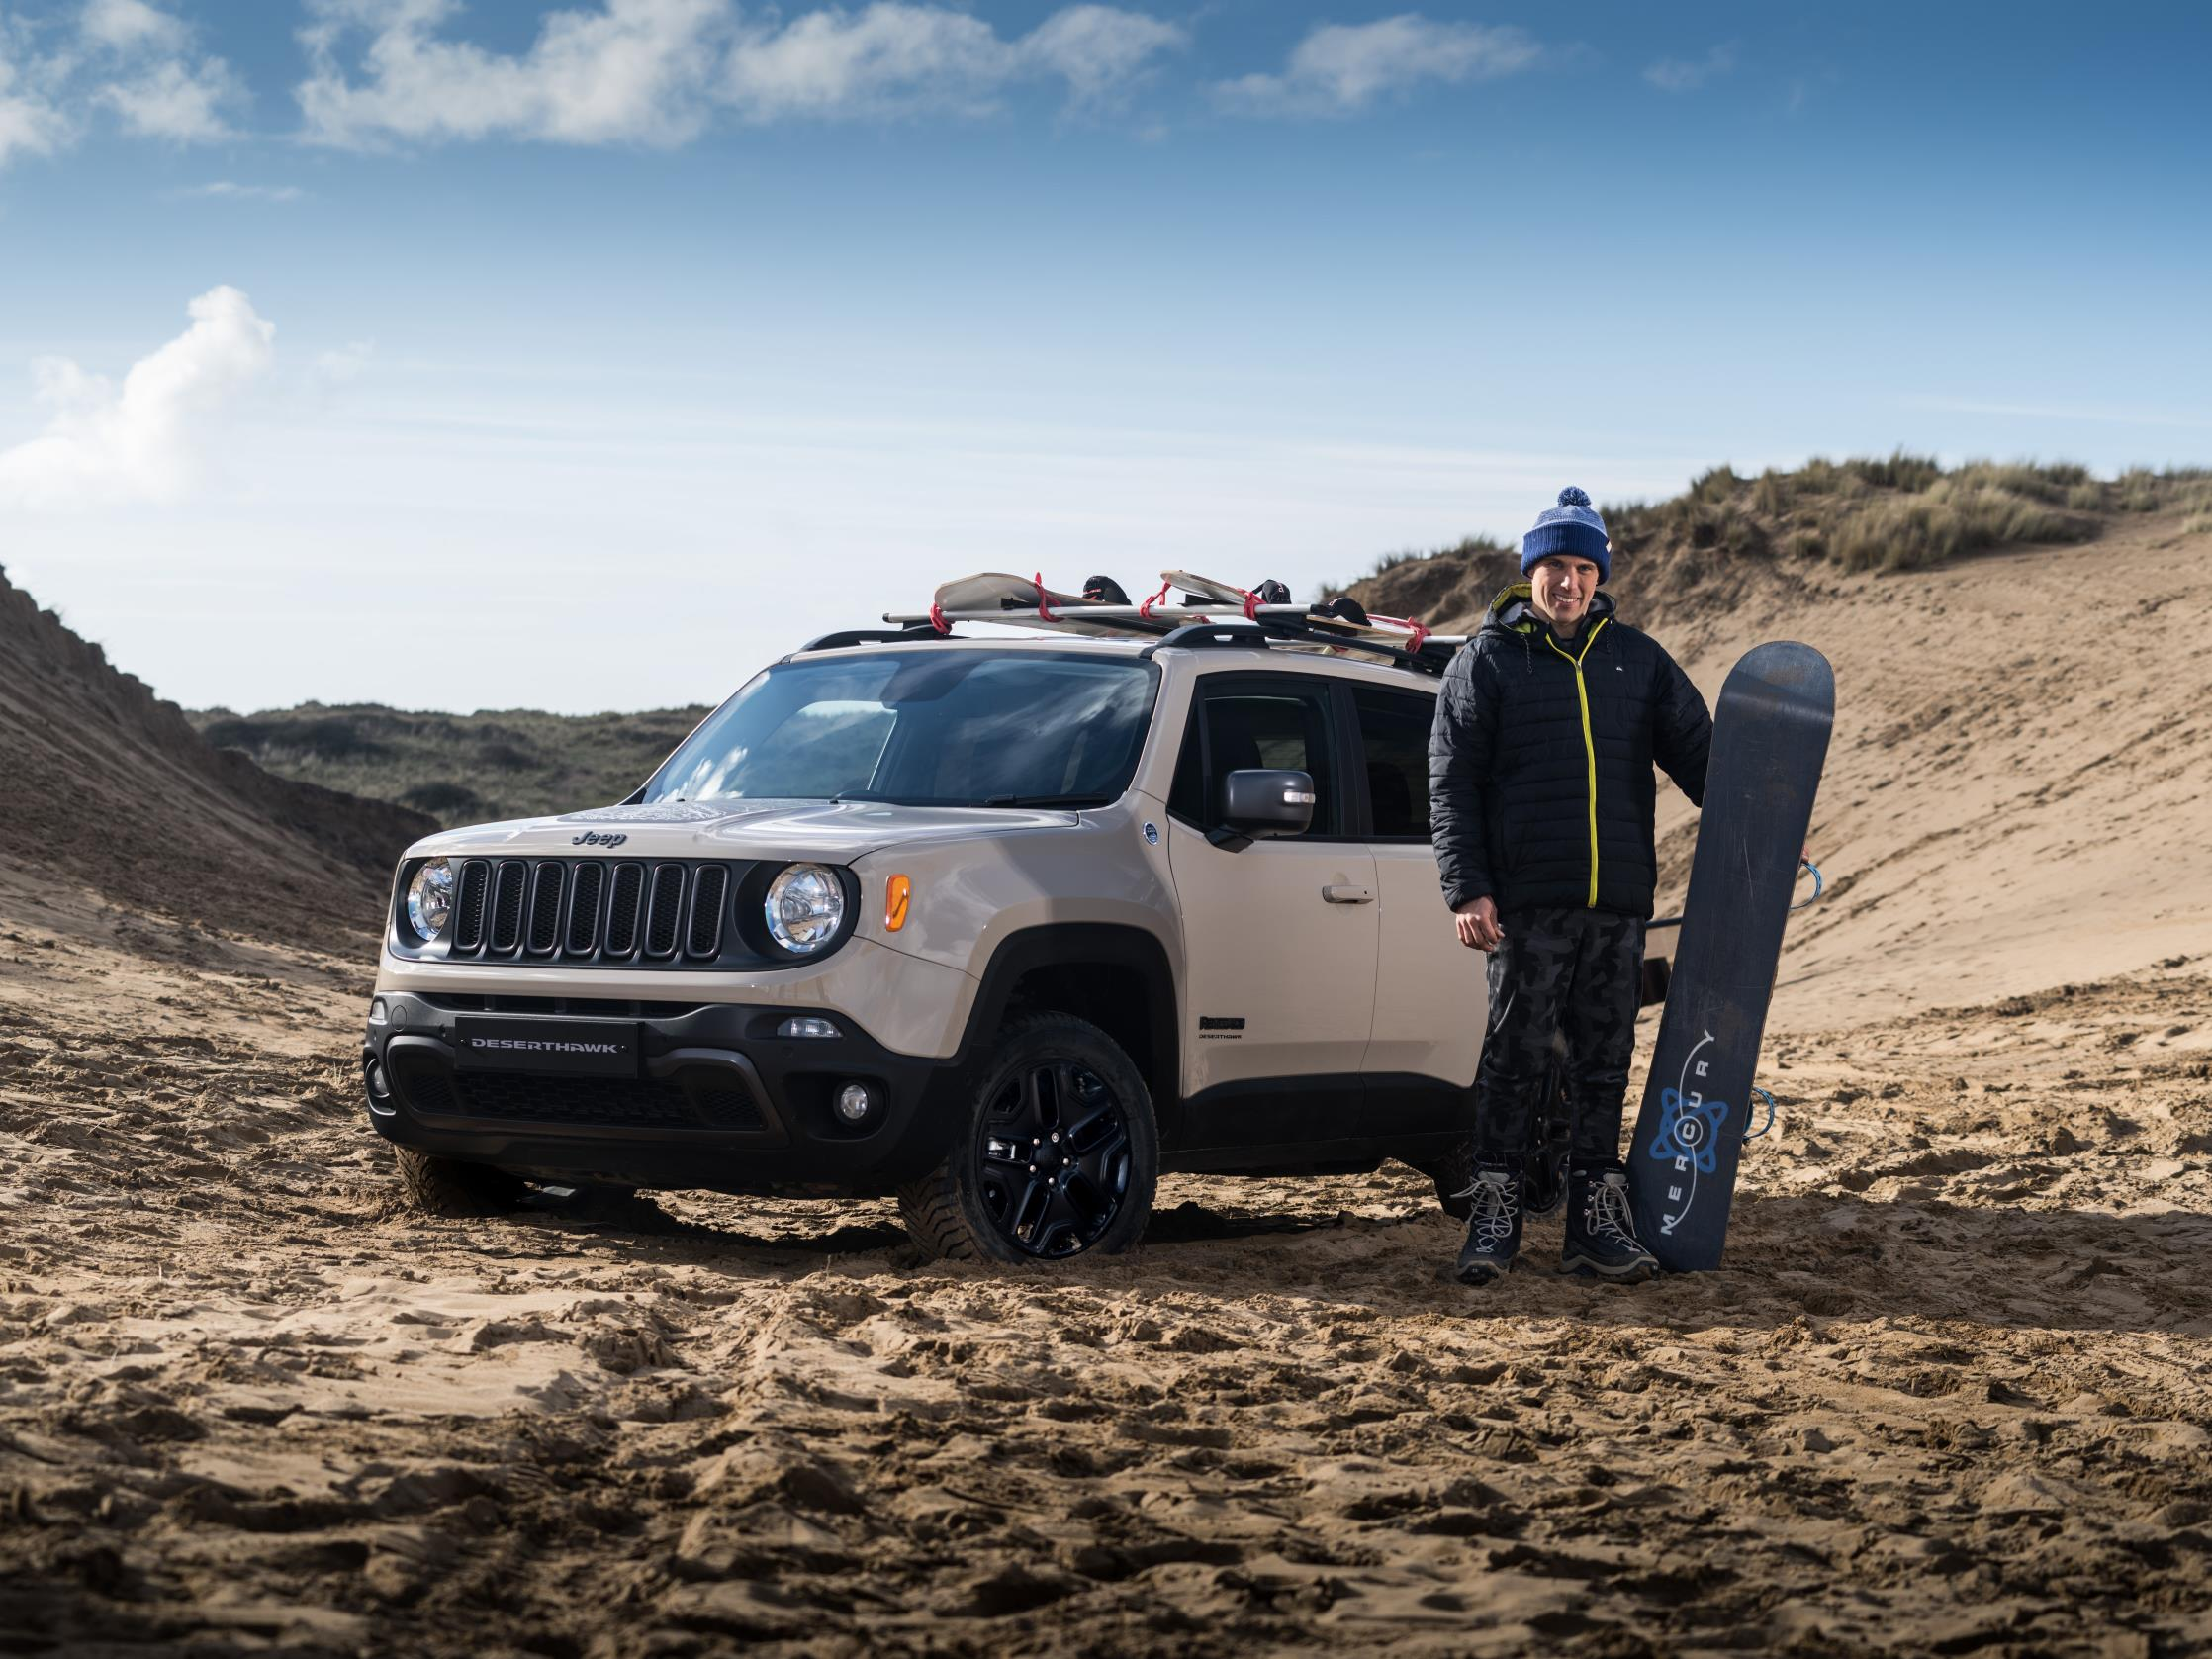 Confined Jeep Renegade Suvs Fixed To Arrive At Dealers